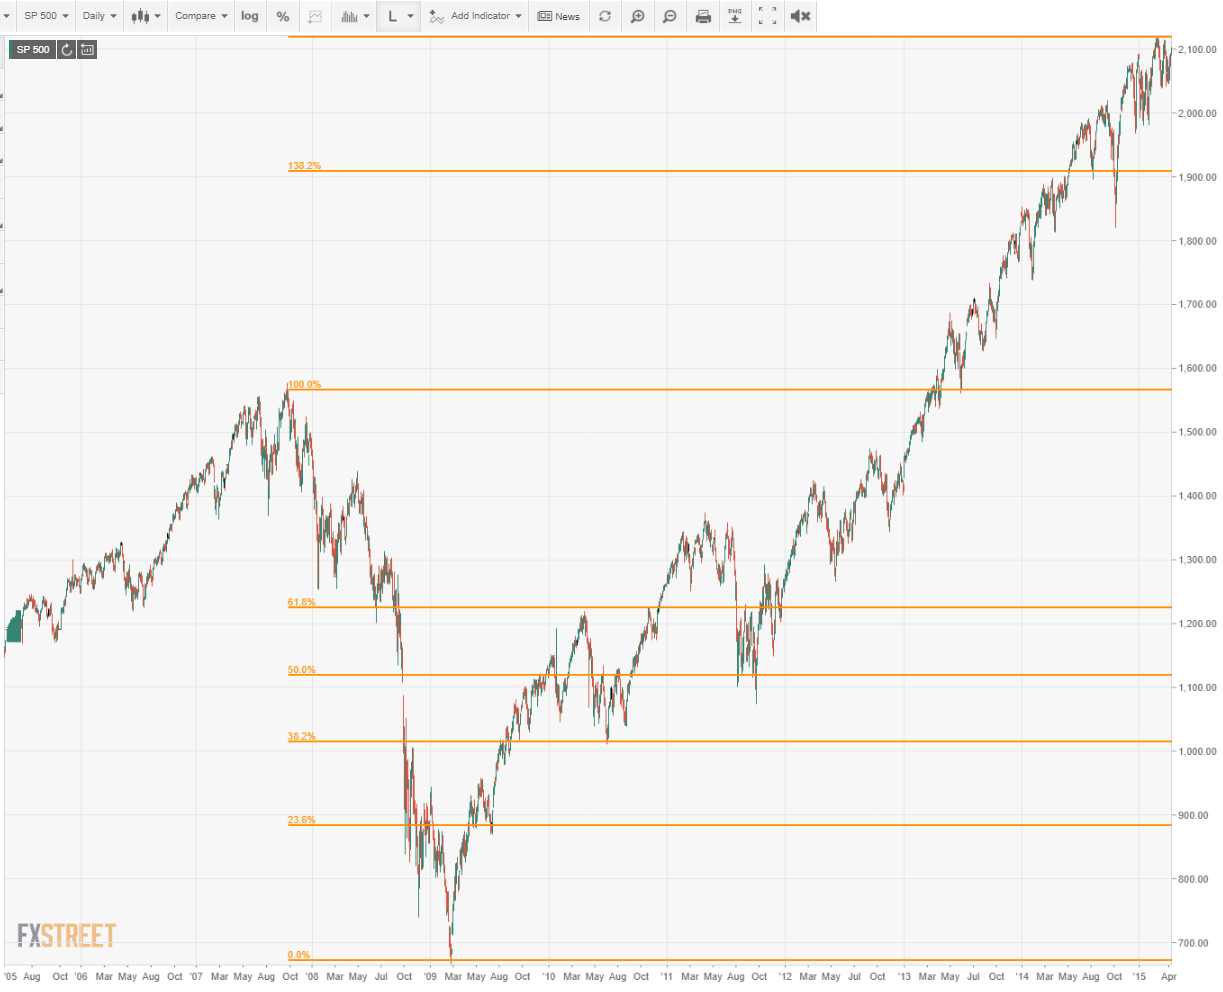 S&P500 daily chart 2009